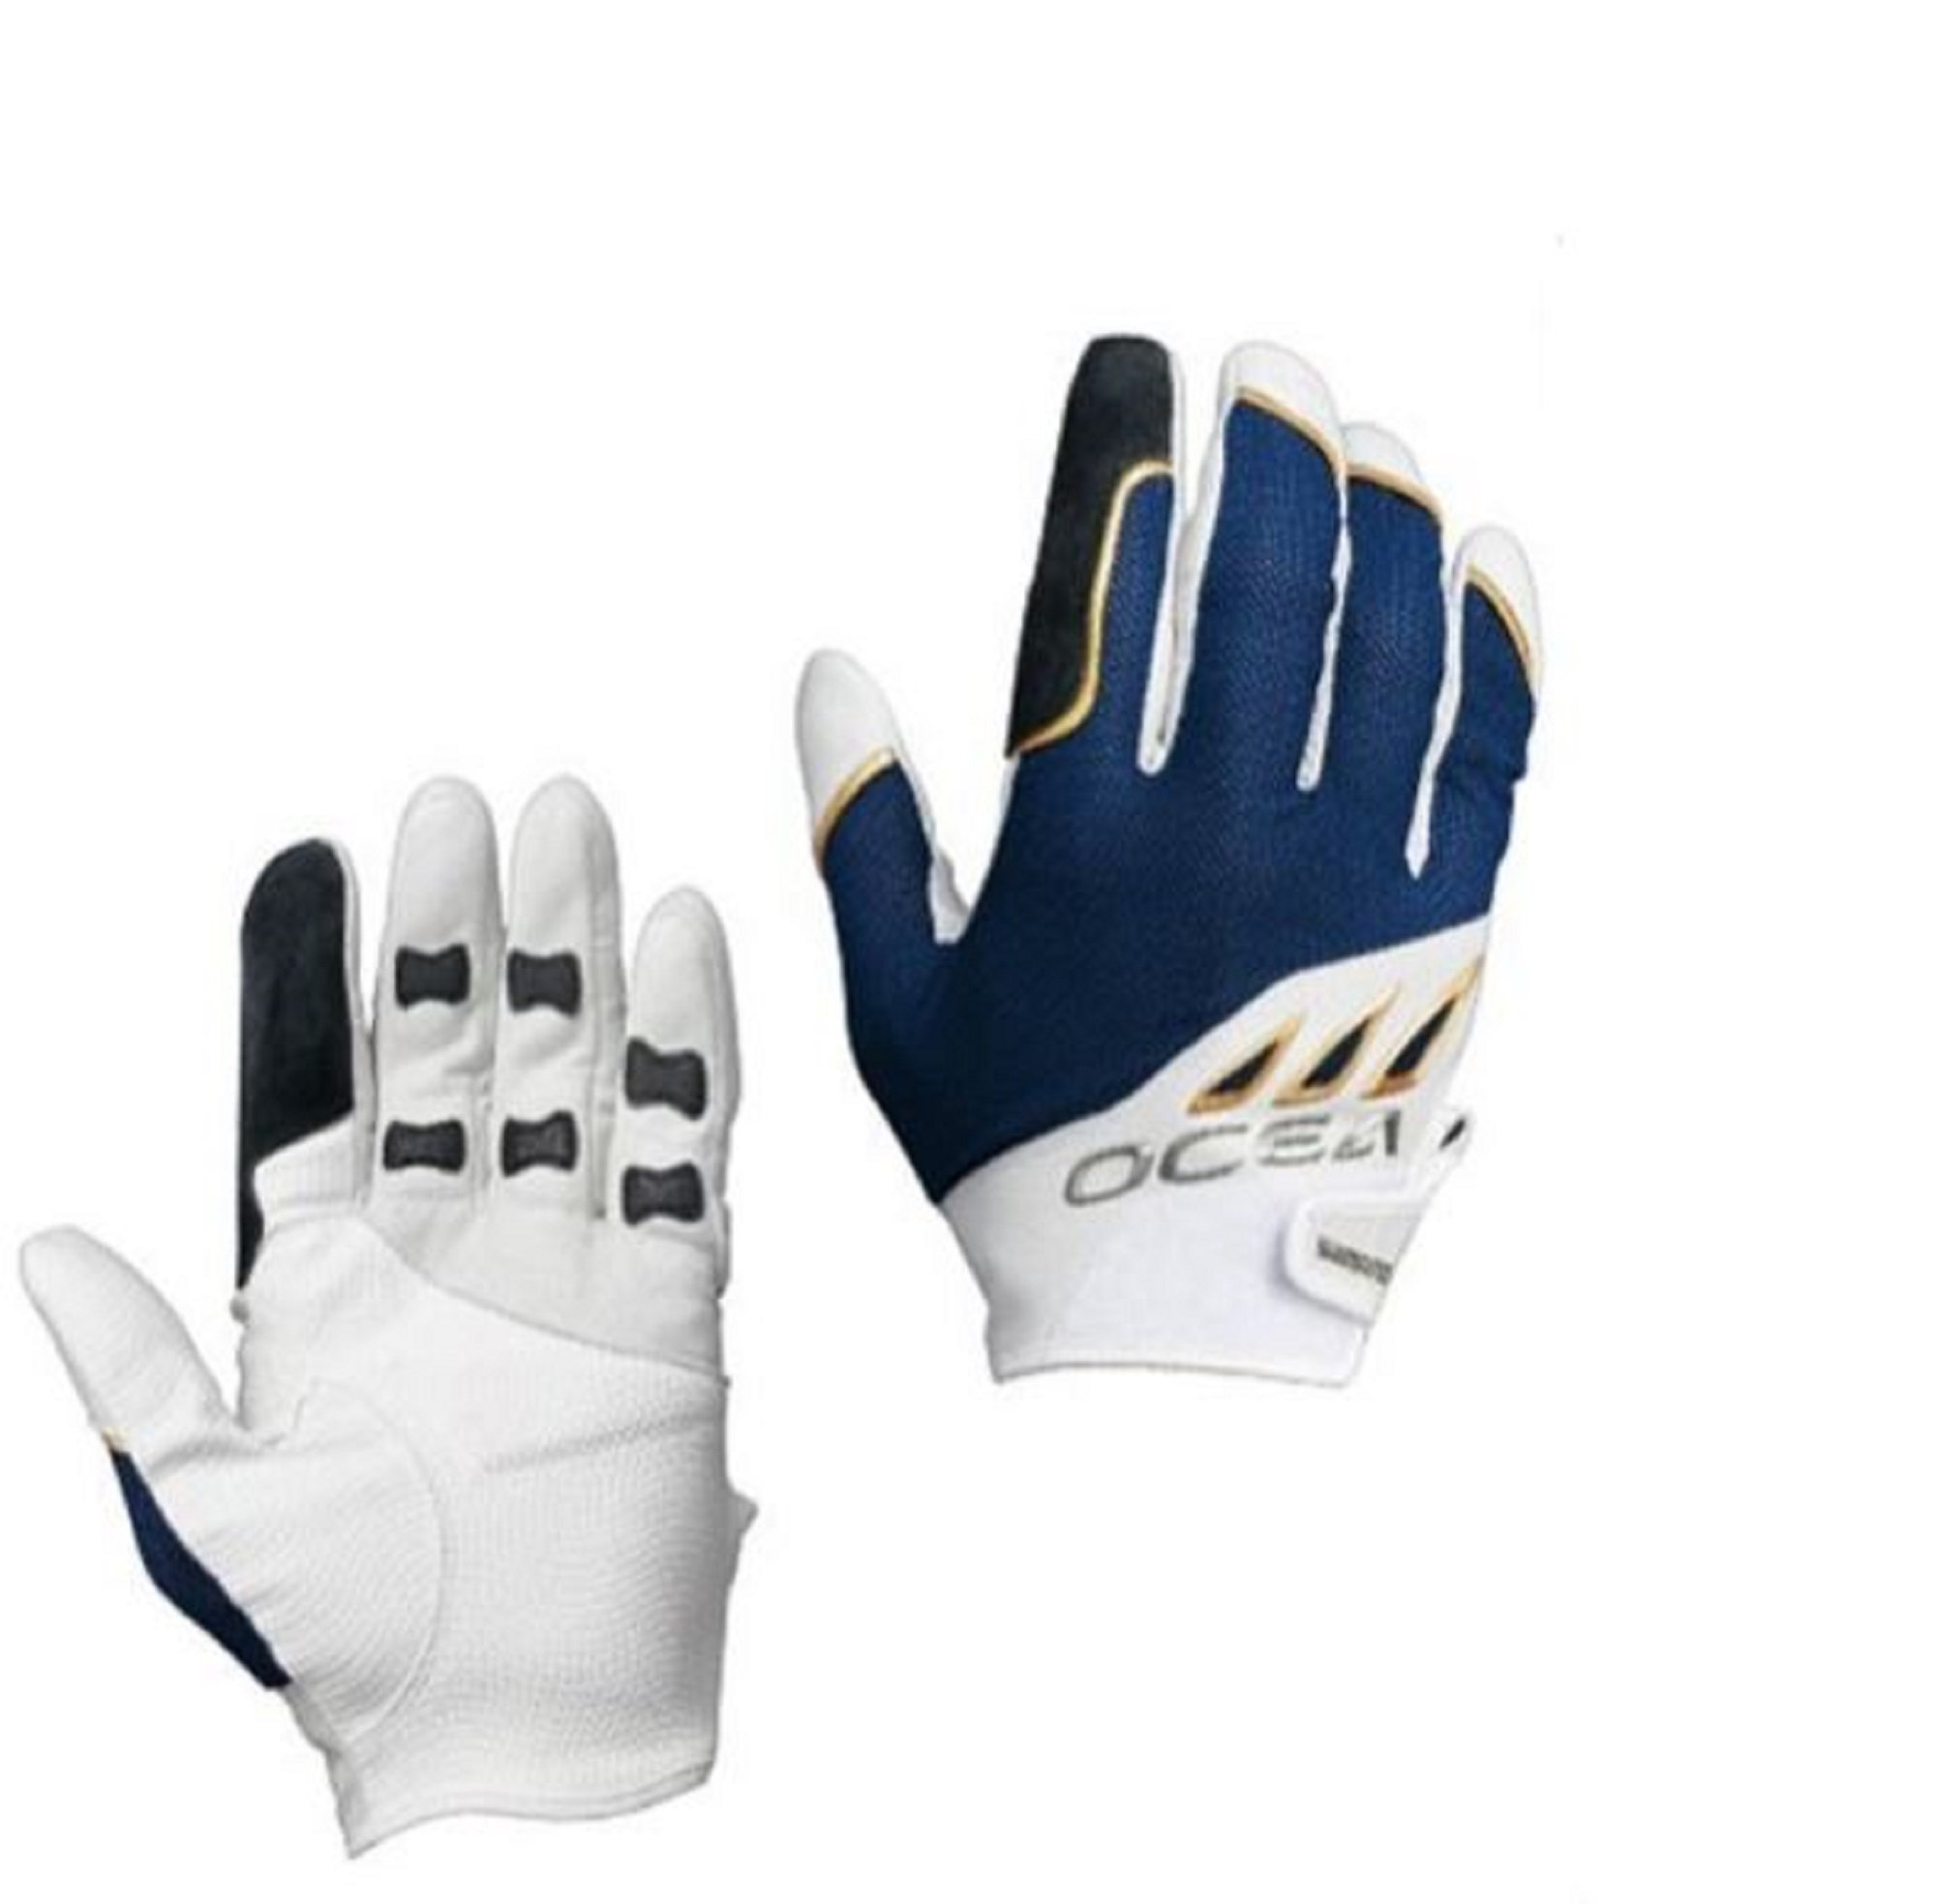 Shimano GL-292Q Gloves Big Game Support Size M White 479501